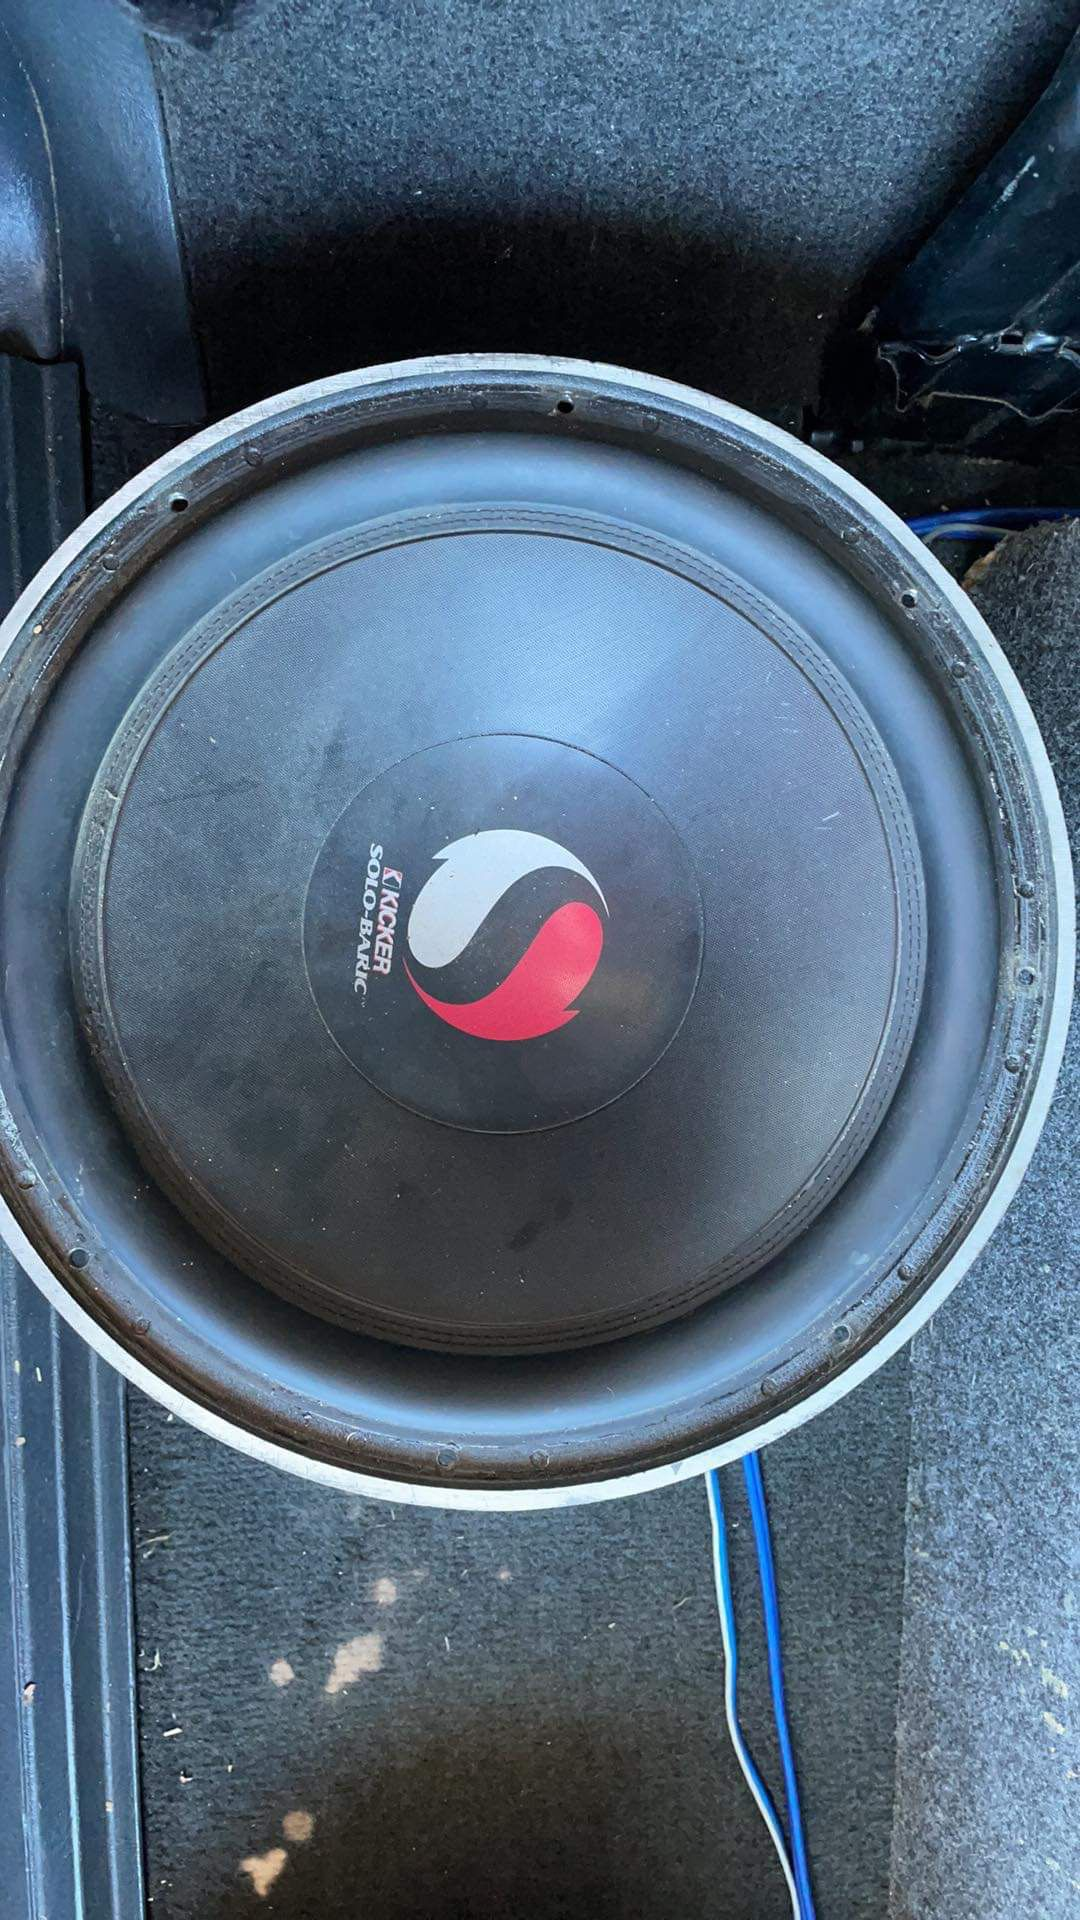 Solo Baric 12  With A 400.1 kicker Amp